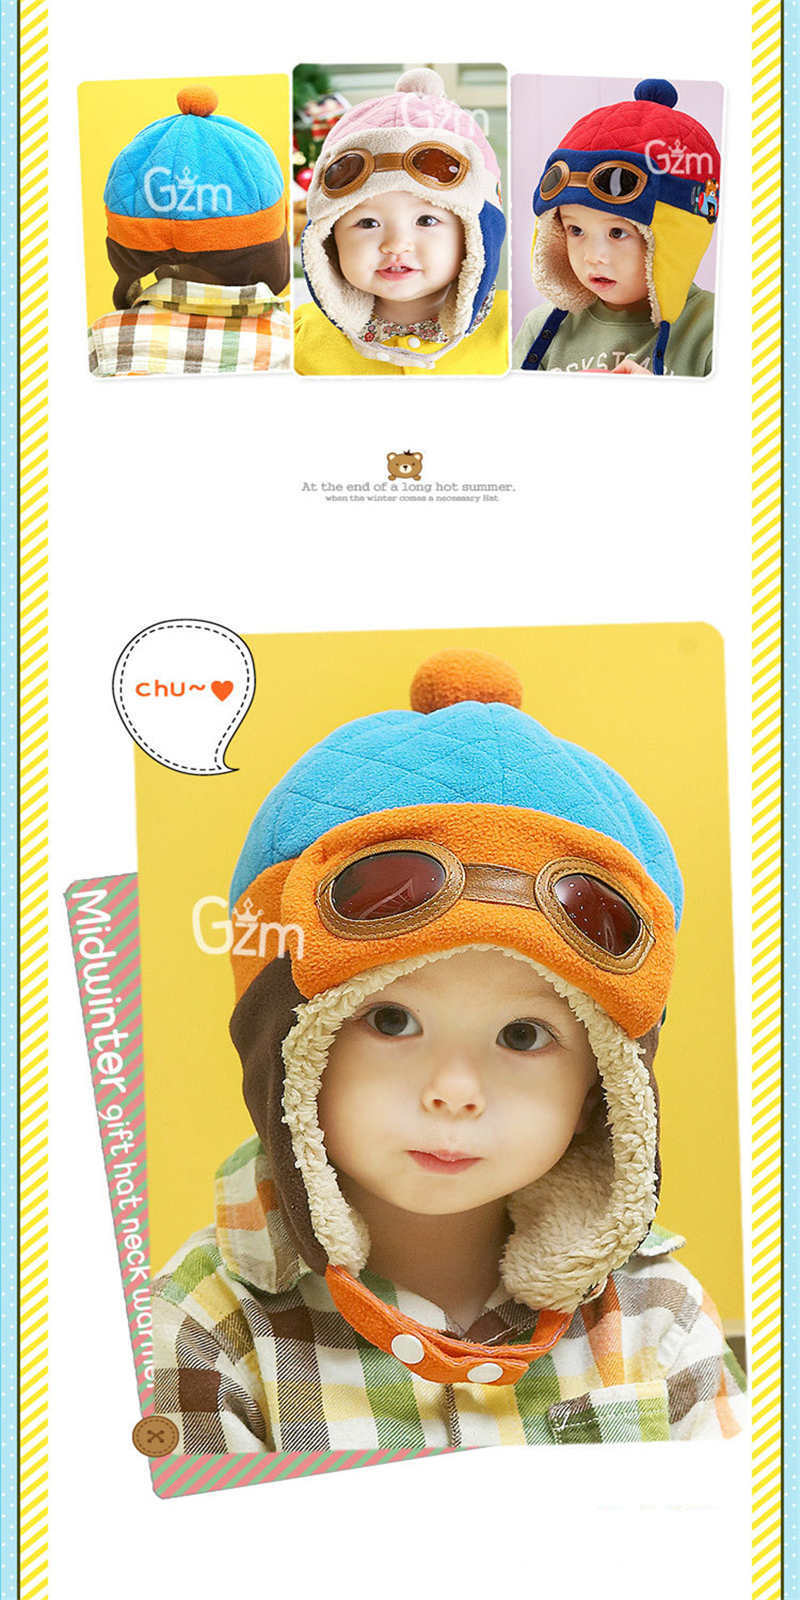 Children Toy Caps Winter Warm Baby Hats Toddlers Boys Girls Pilot Caps Eargflap Hat Winter Warm Cap Child Holiday Party Hats